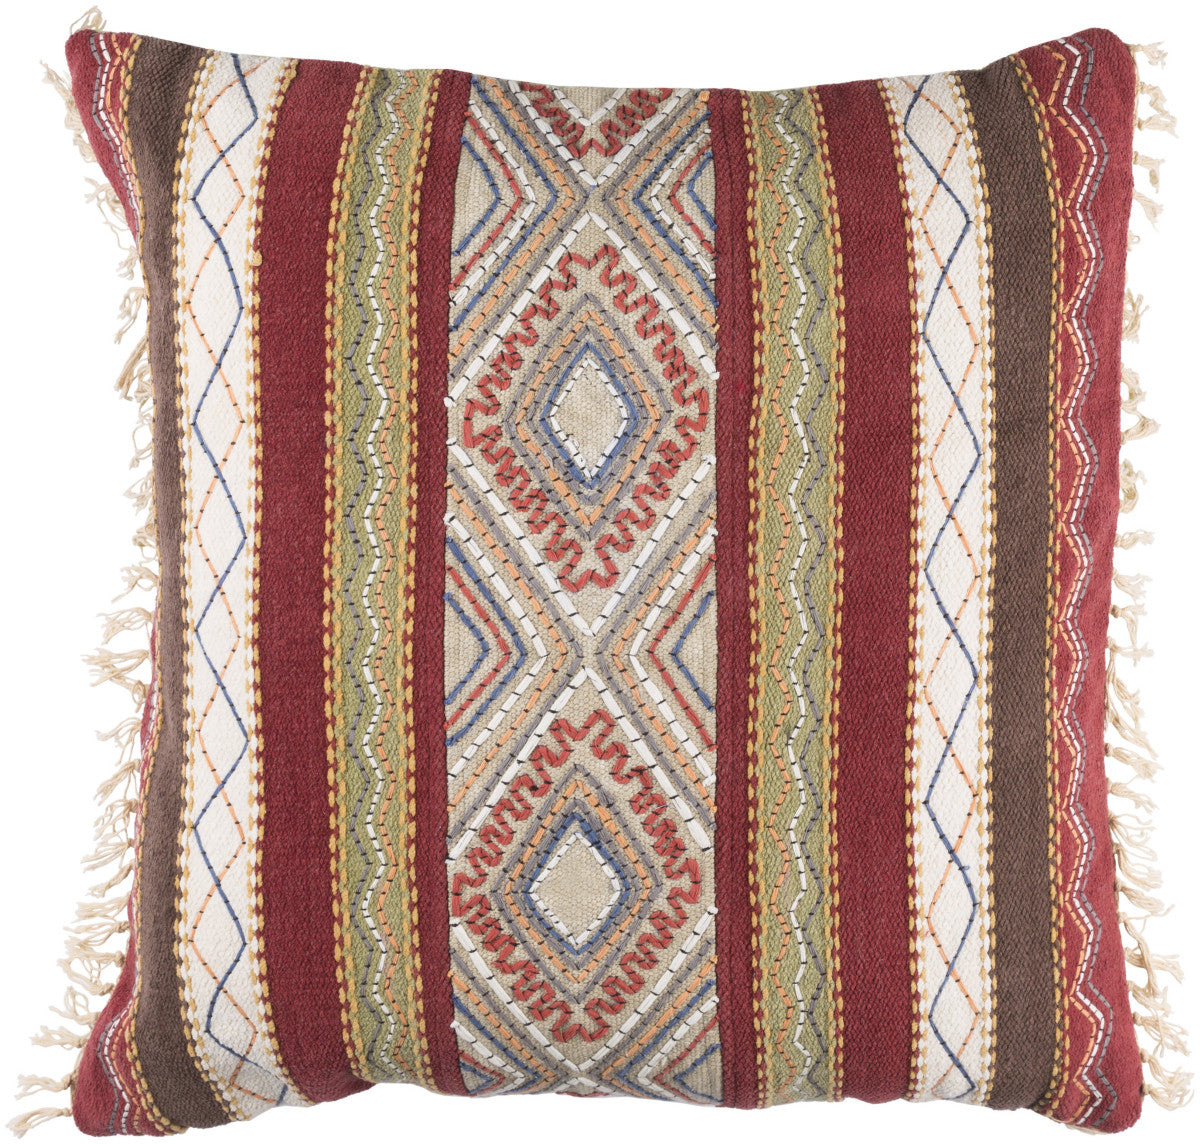 Surya Marrakech MR004 Pillow